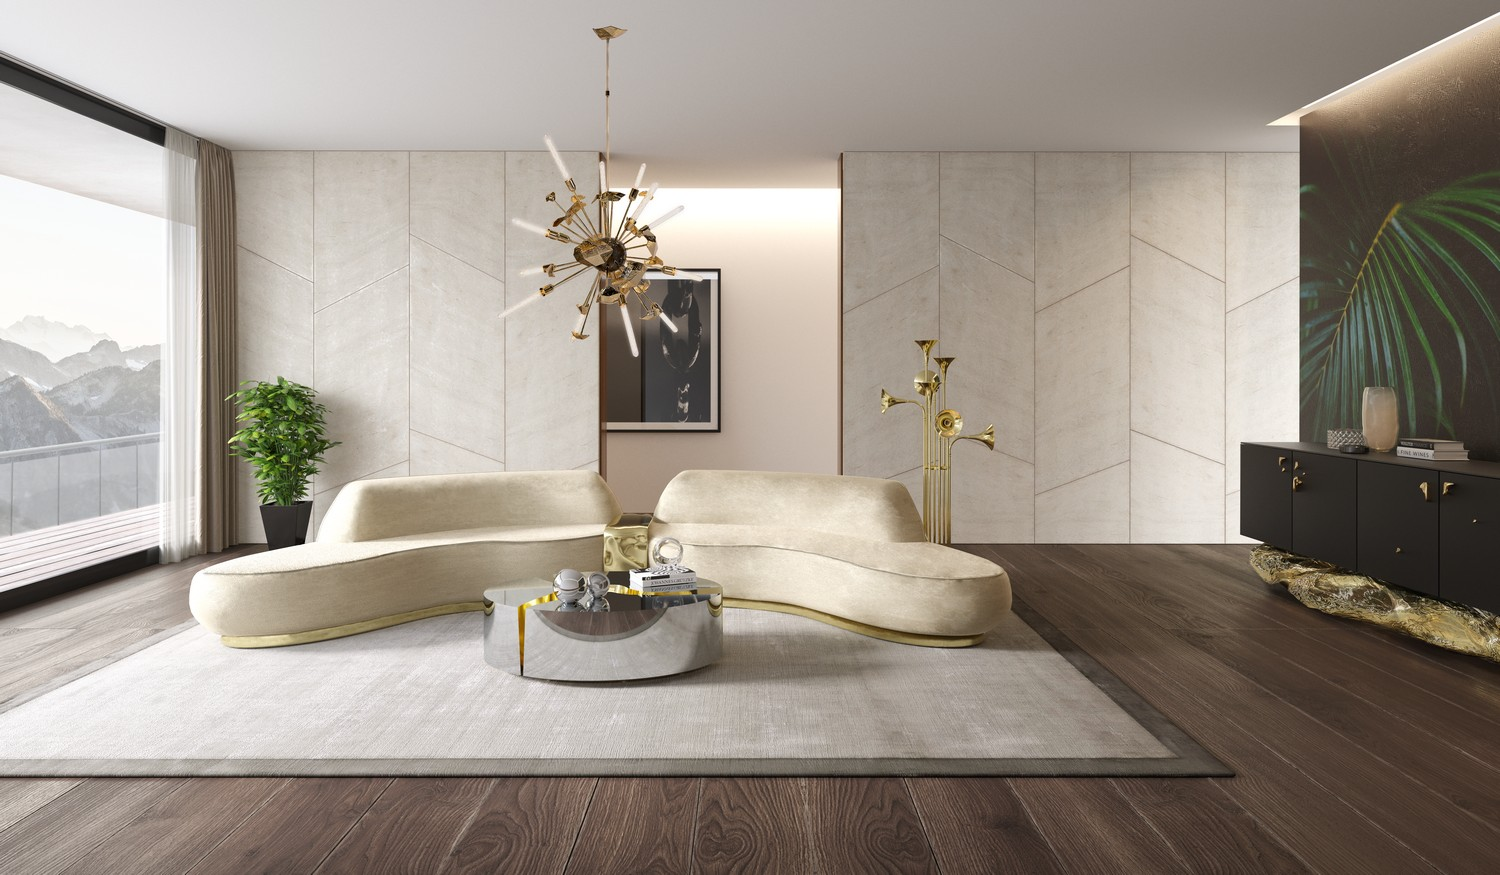 coffee table designs These Coffee Table Designs Are Just Perfect For Summer Season white